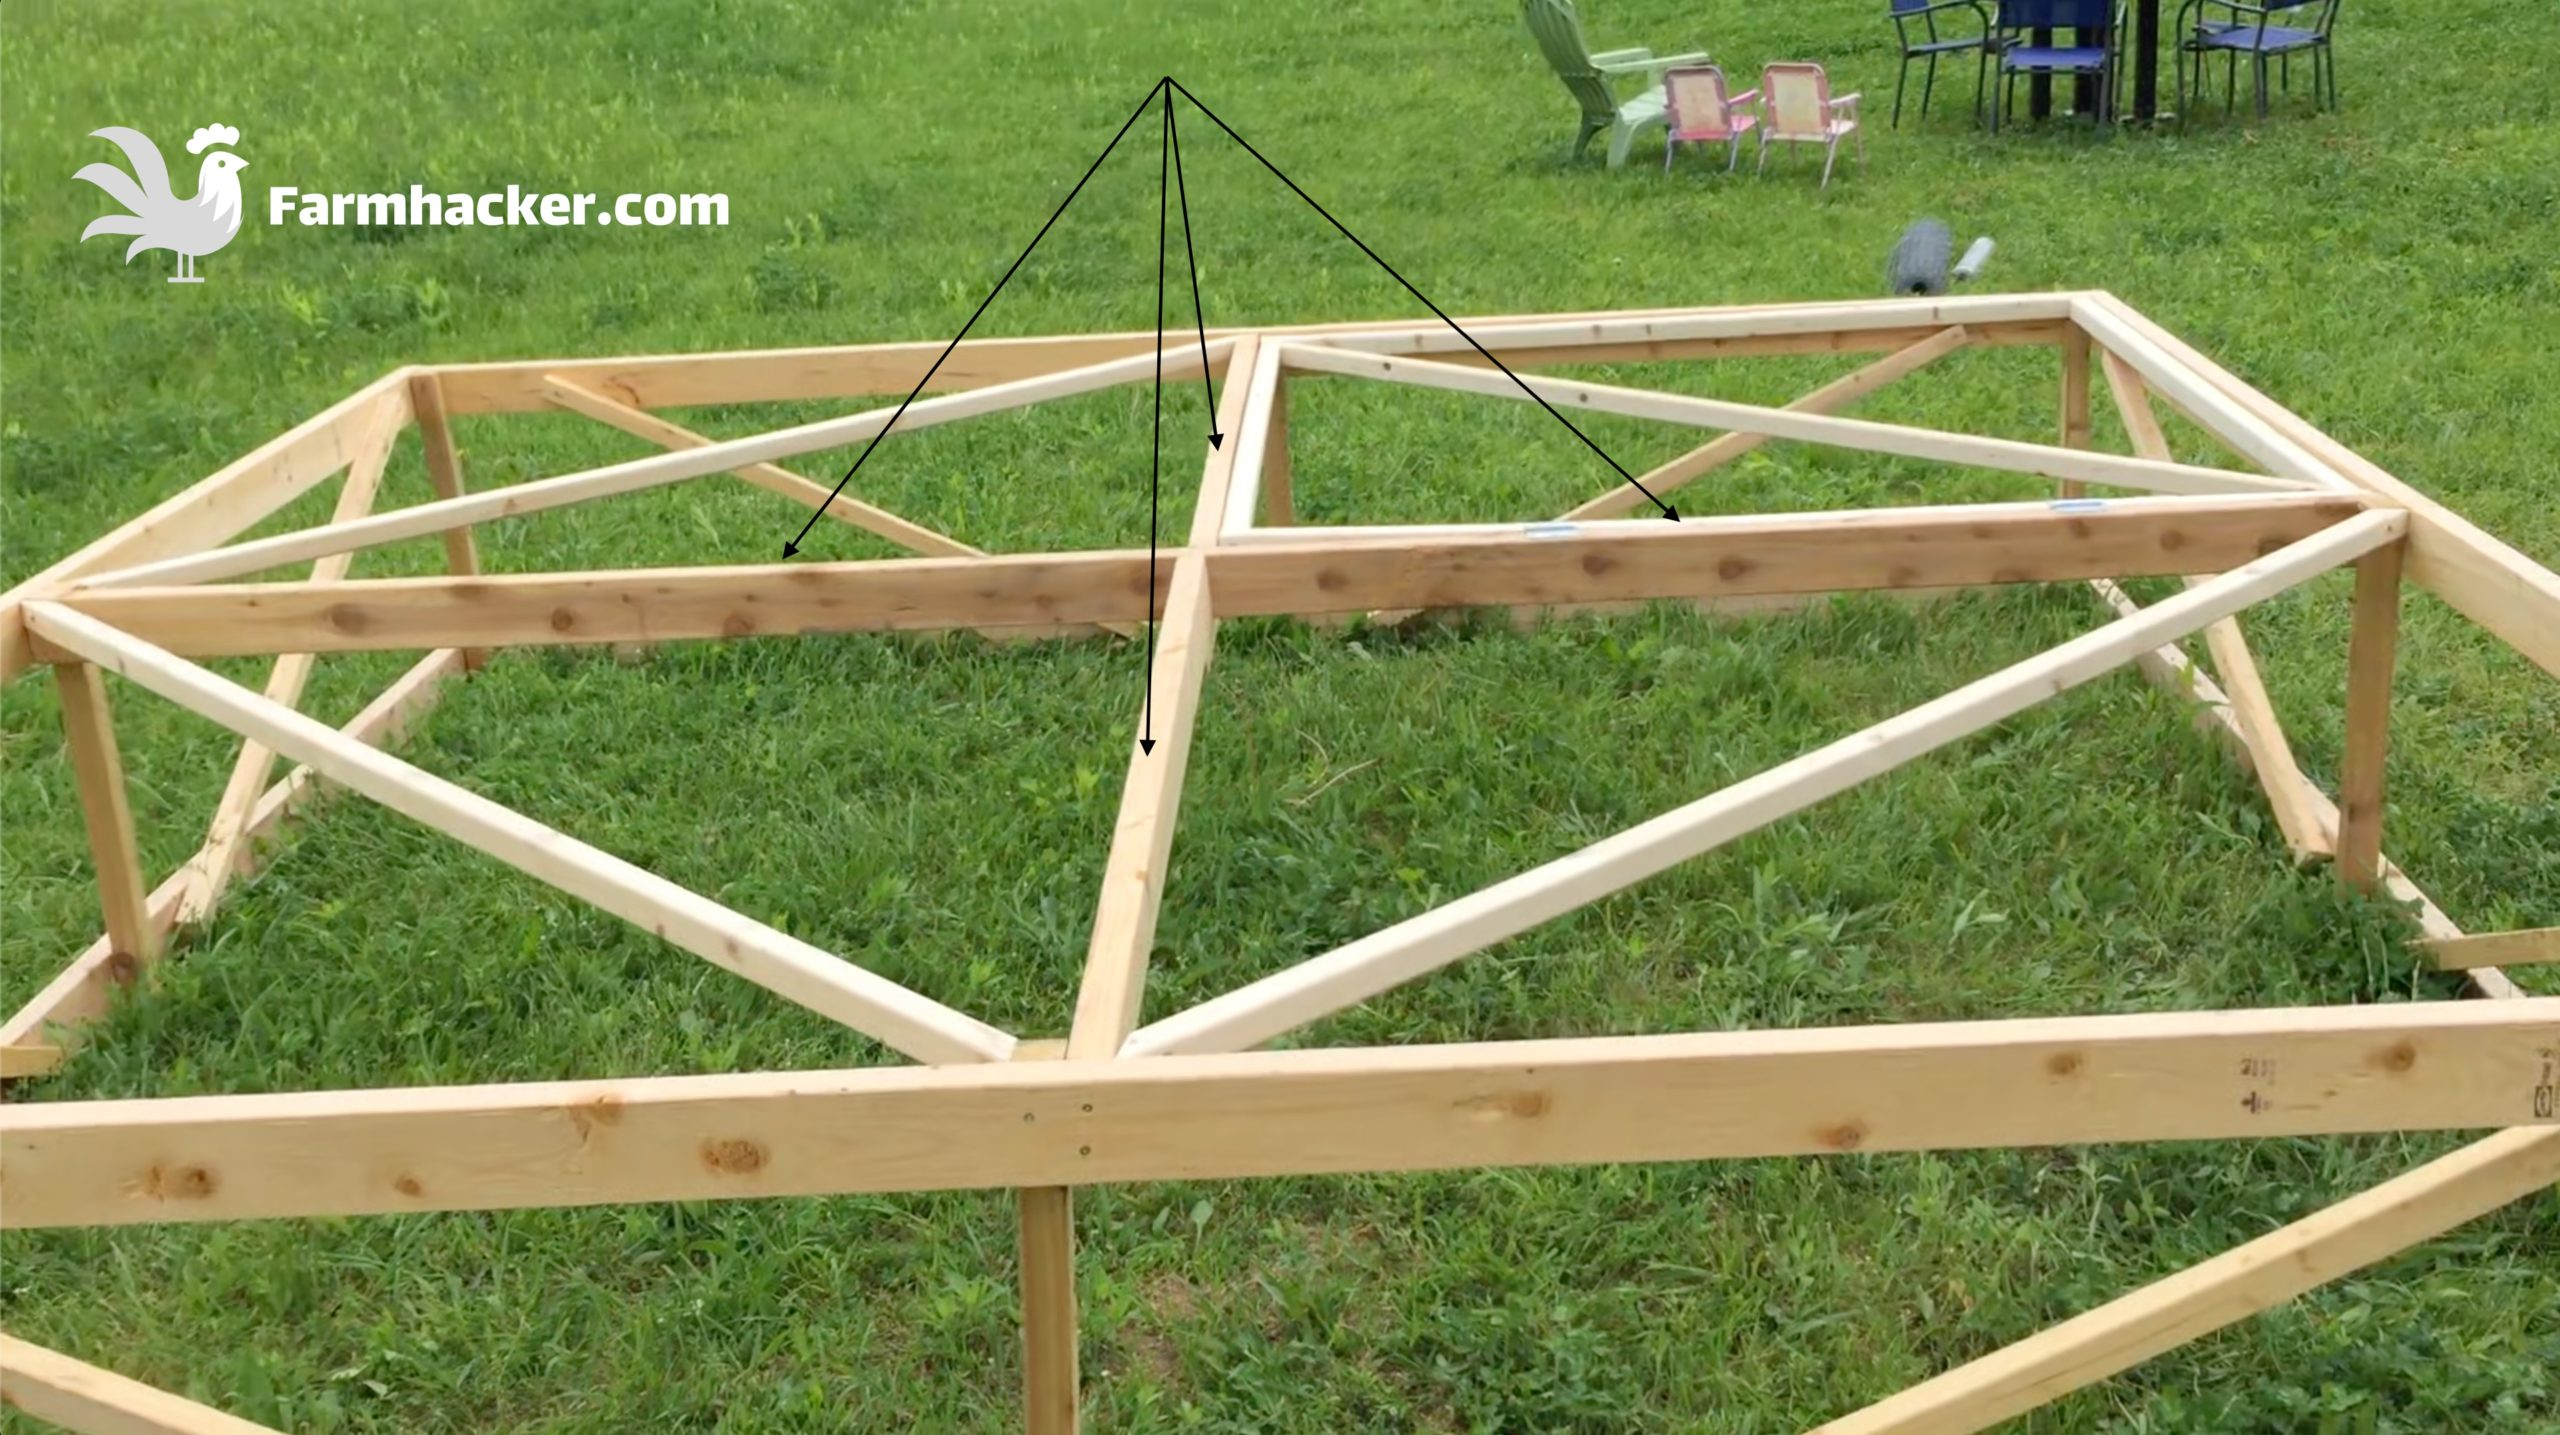 How to Build a Joel Salatin Style Chicken Tractor Step 2.1